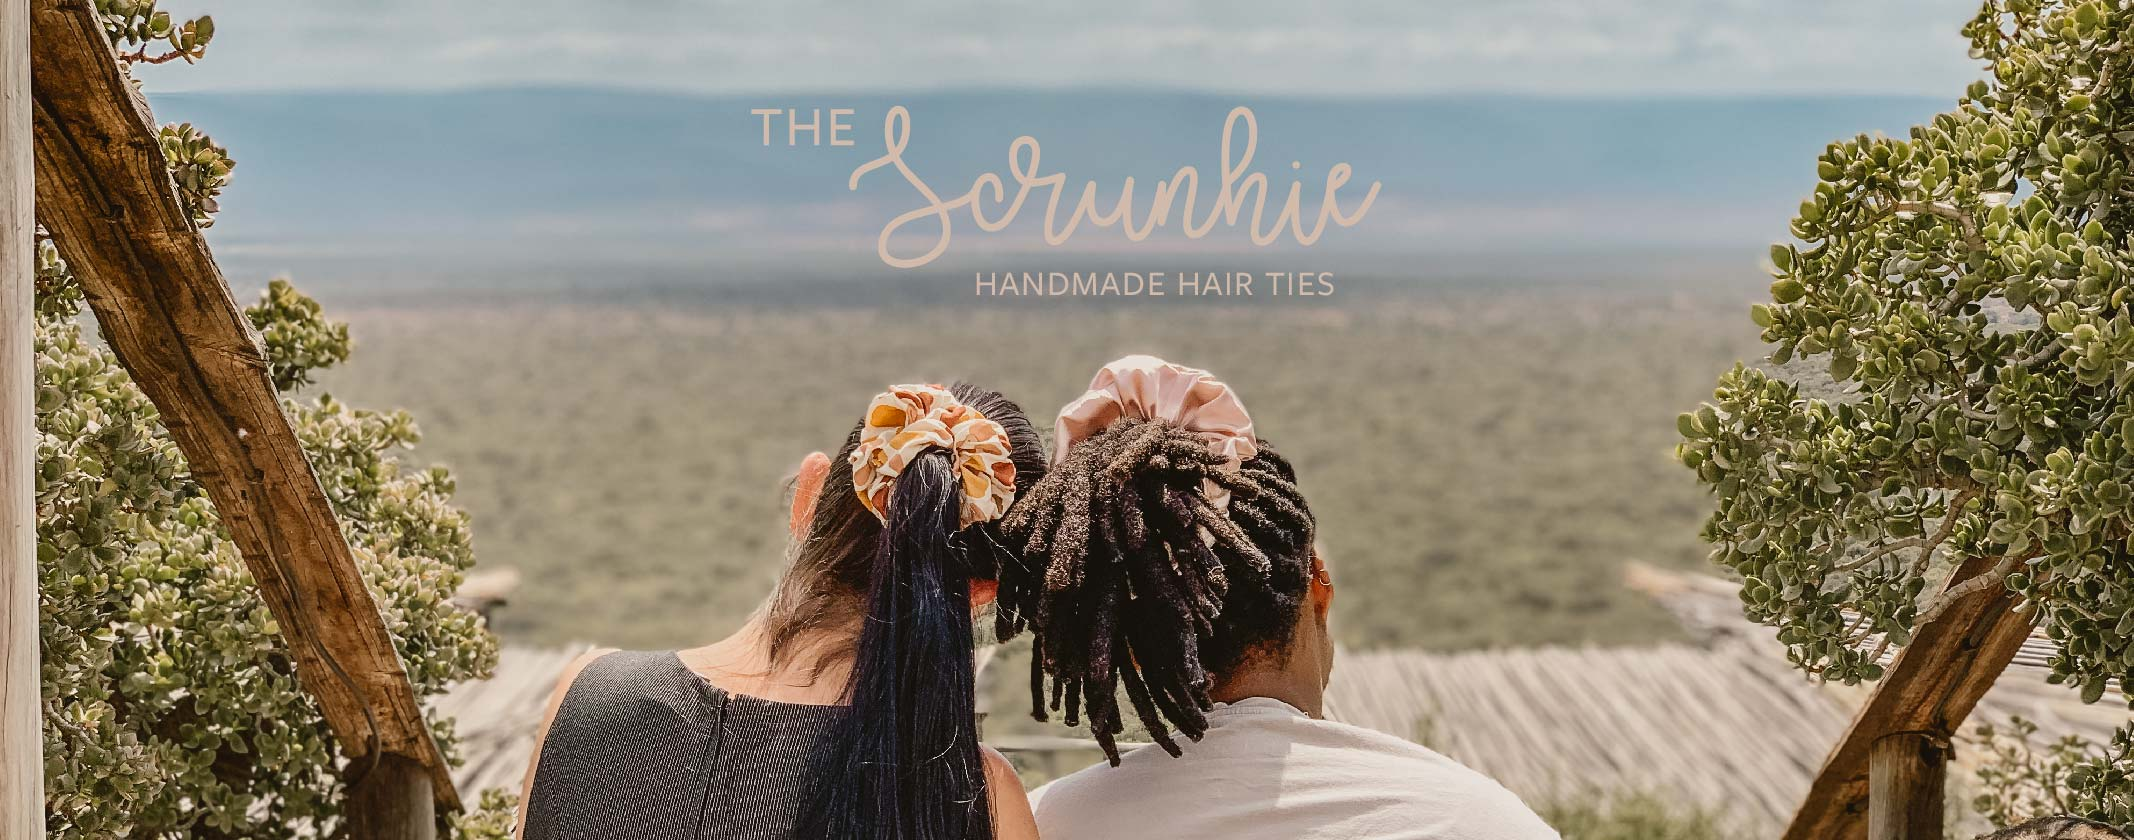 MAX_AND_WILLOW_SCRUNCHIES